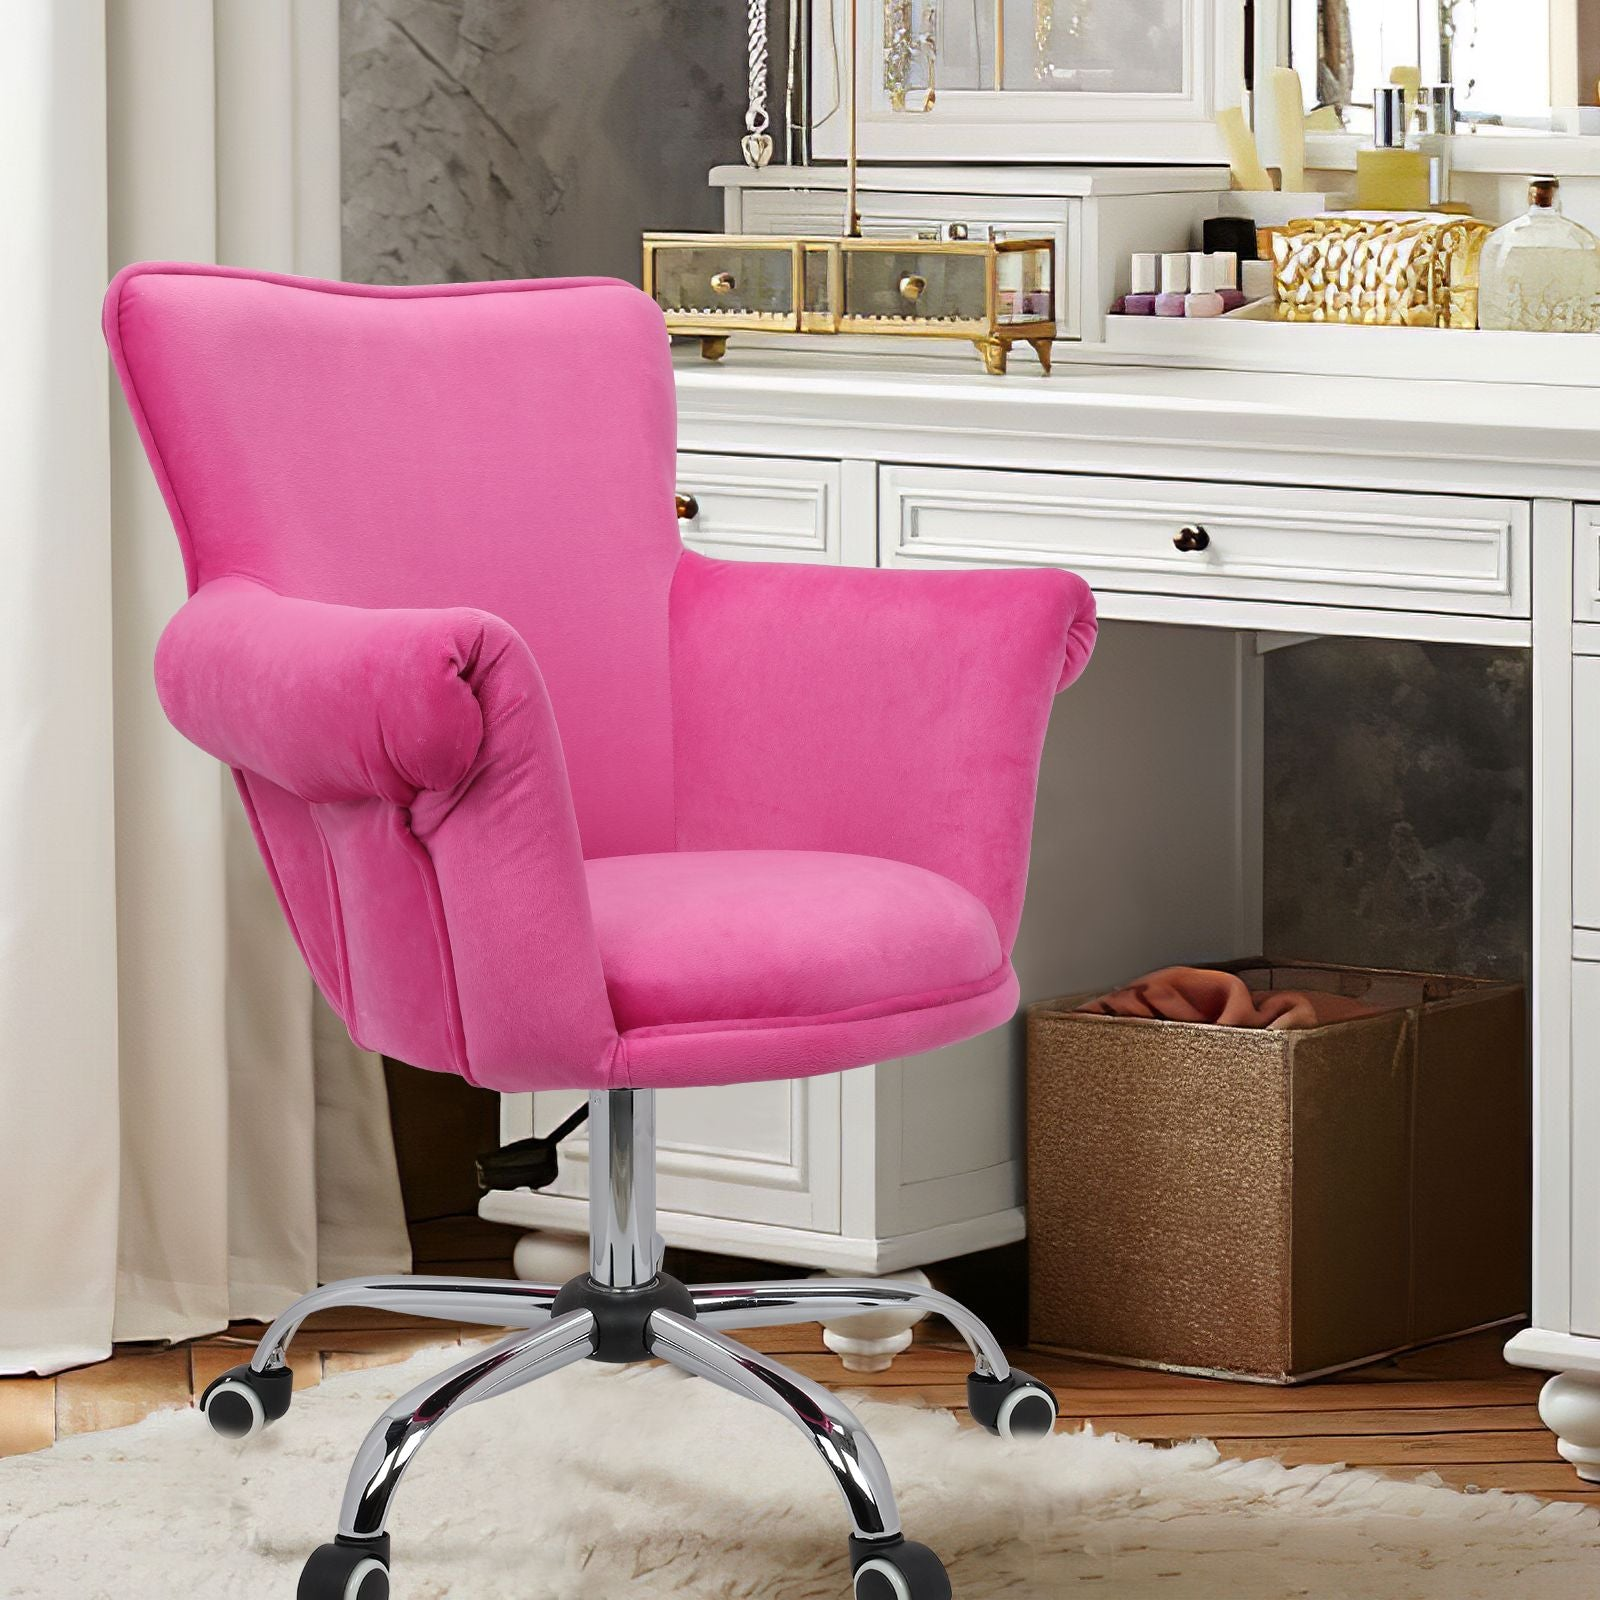 Pale Violet Red Modern Mid Back Microfiber Home Office Chair Computer Desk Chair Swivel Beauty Nail Salon Spa Vanity Seat